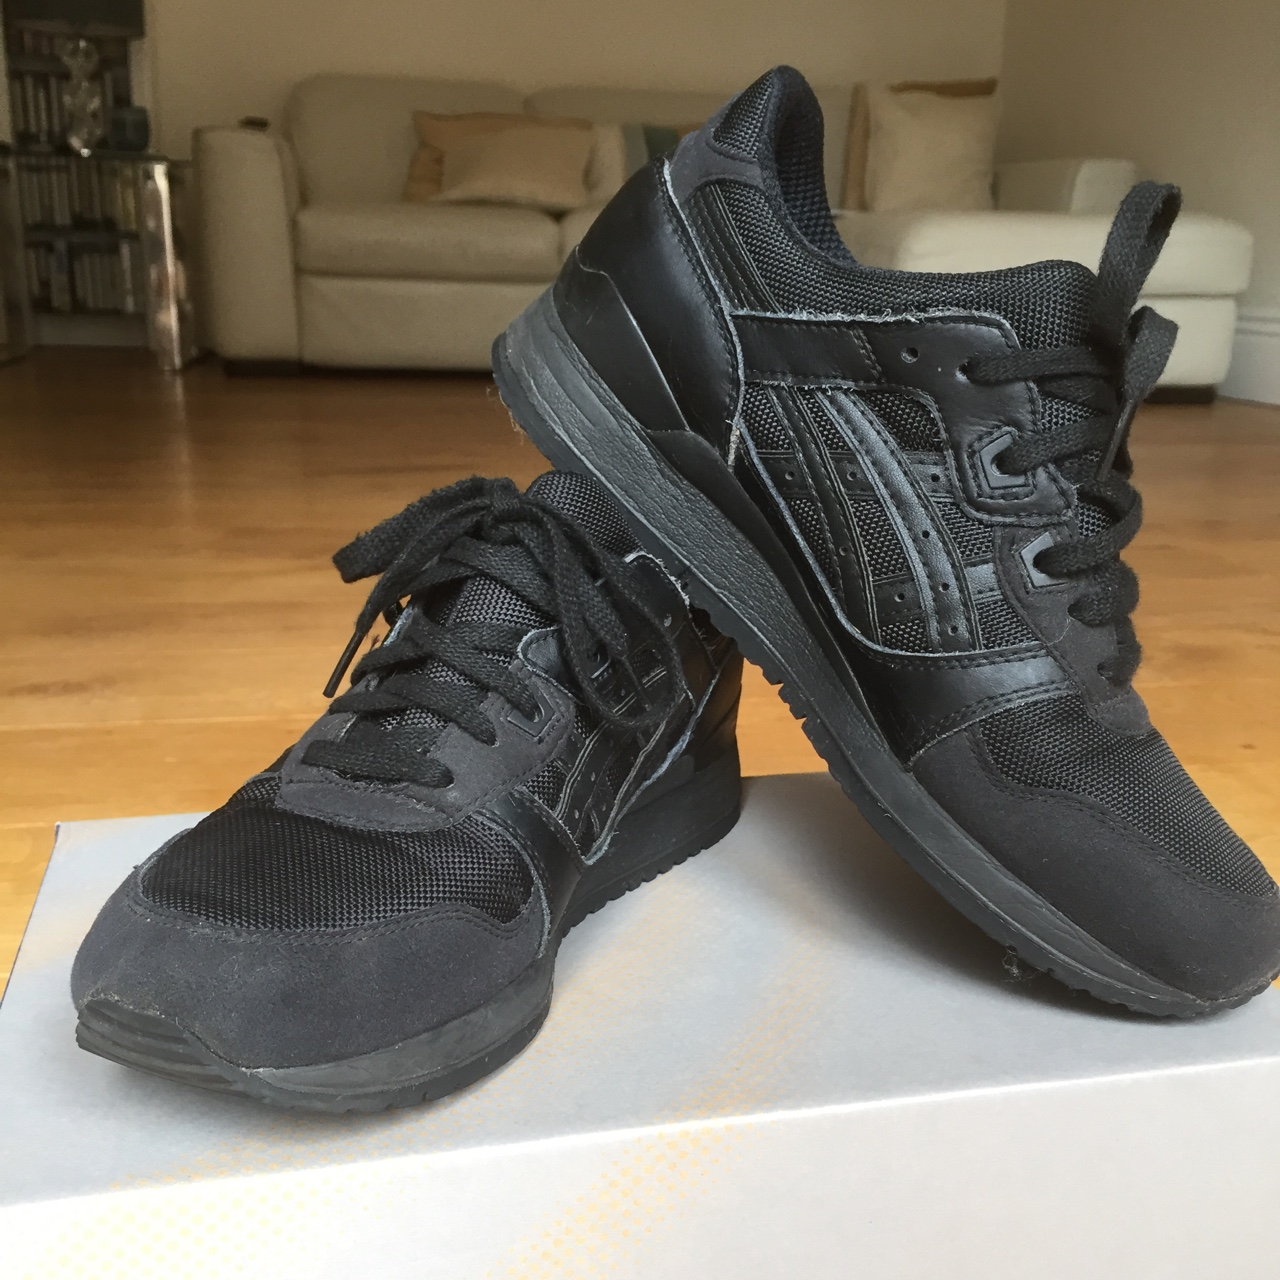 quality design fd520 583d4 Asics Gel-Lyte III all black trainers. Textile and... - Depop